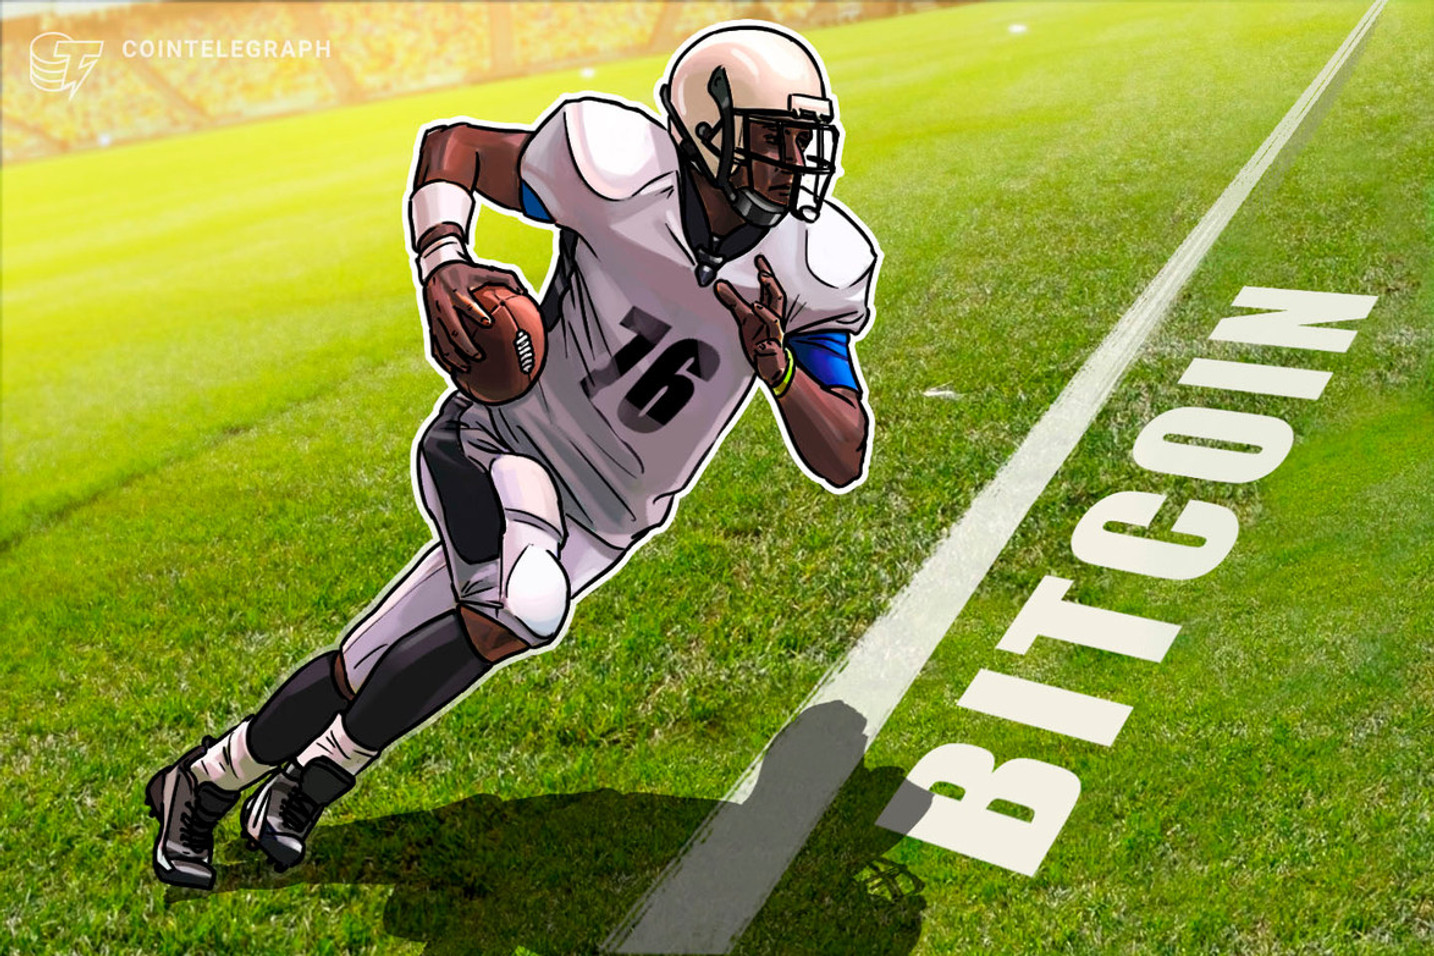 NFL Player Receives $6.5 Million Salary in Bitcoin